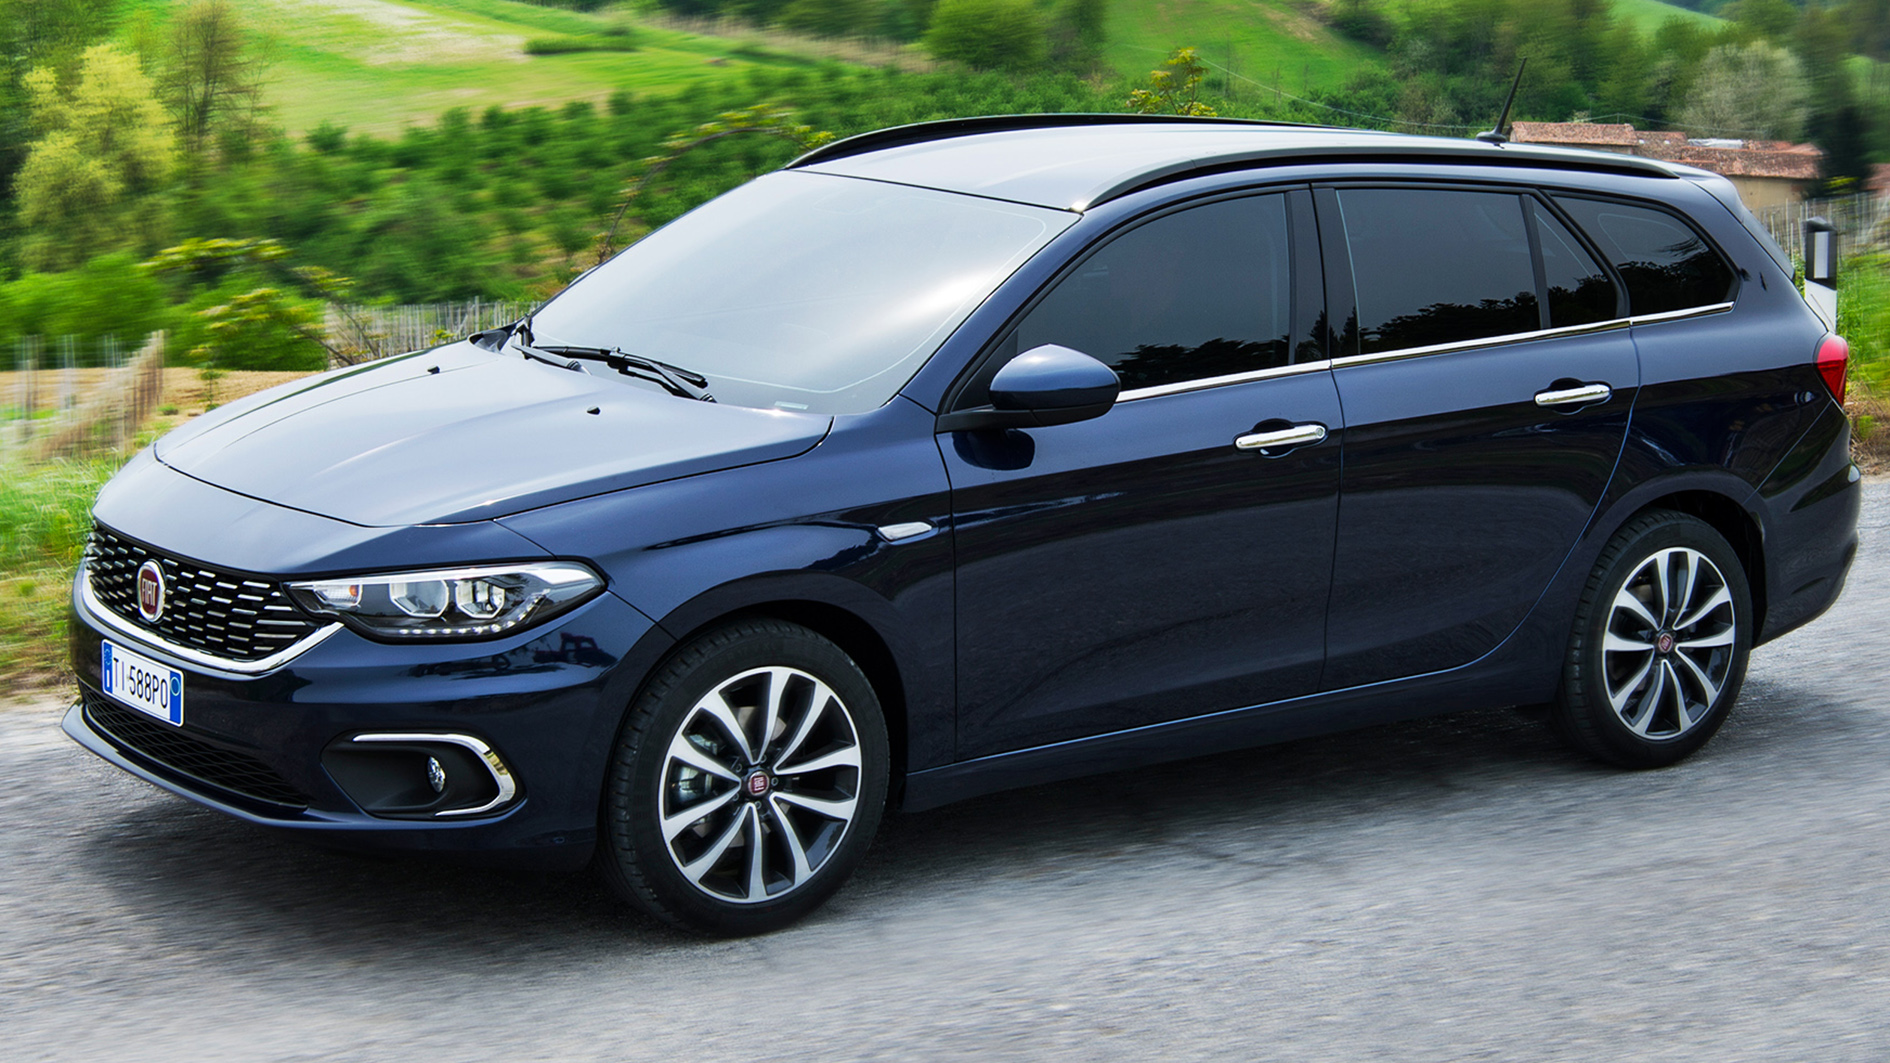 fiat tipo estate dct test review 2017 drive report. Black Bedroom Furniture Sets. Home Design Ideas